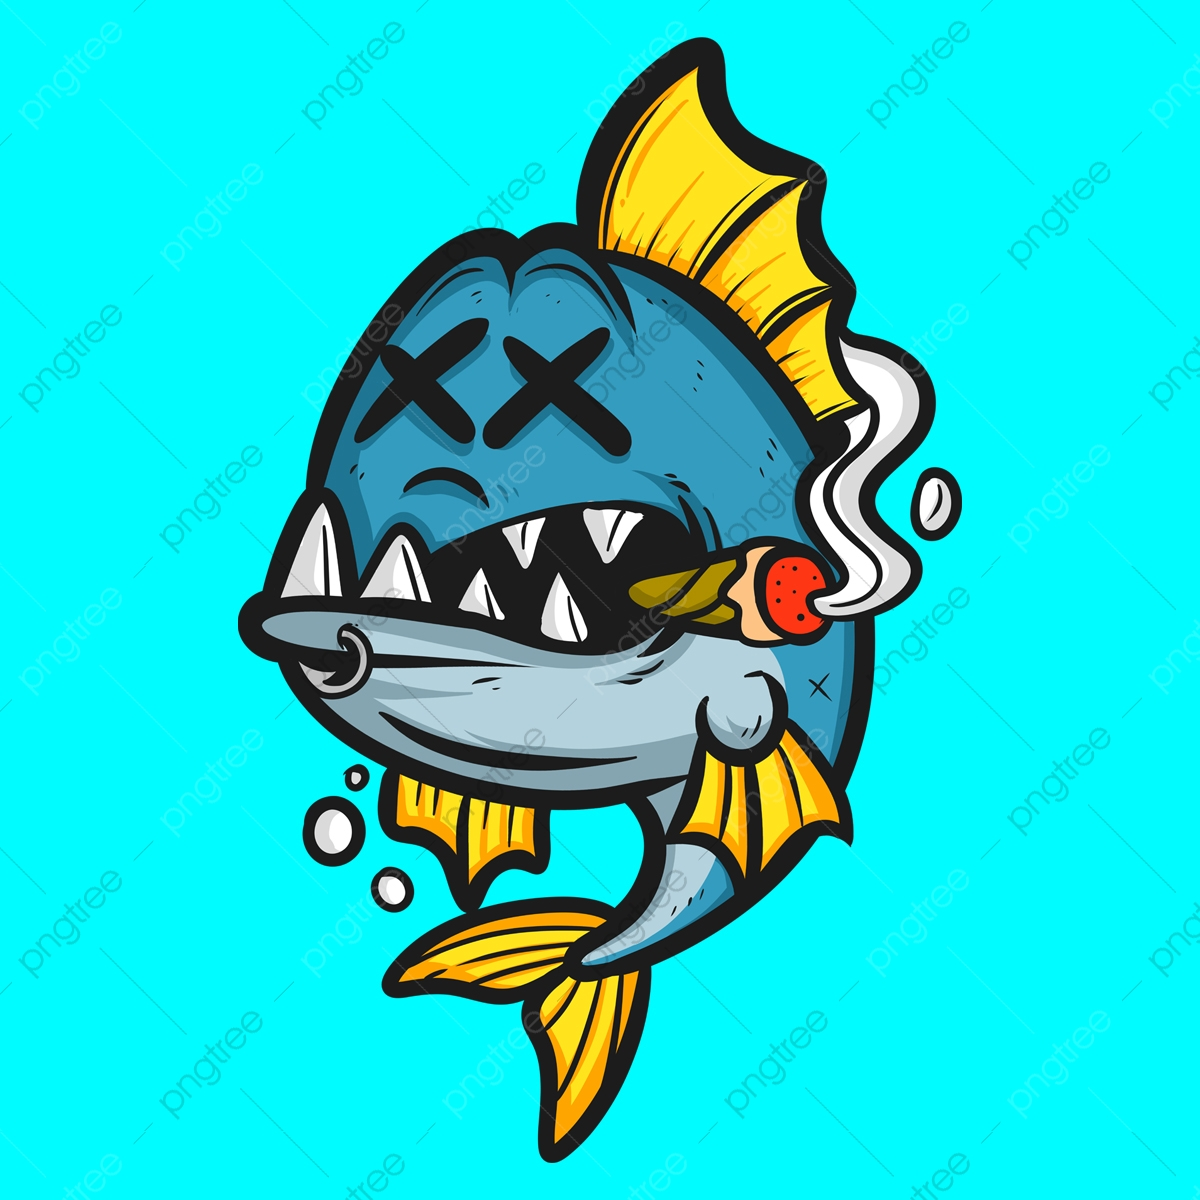 Dead Fish Cartoon Logo Cartoon Tshirt Design Tshirt Png Transparent Clipart Image And Psd File For Free Download